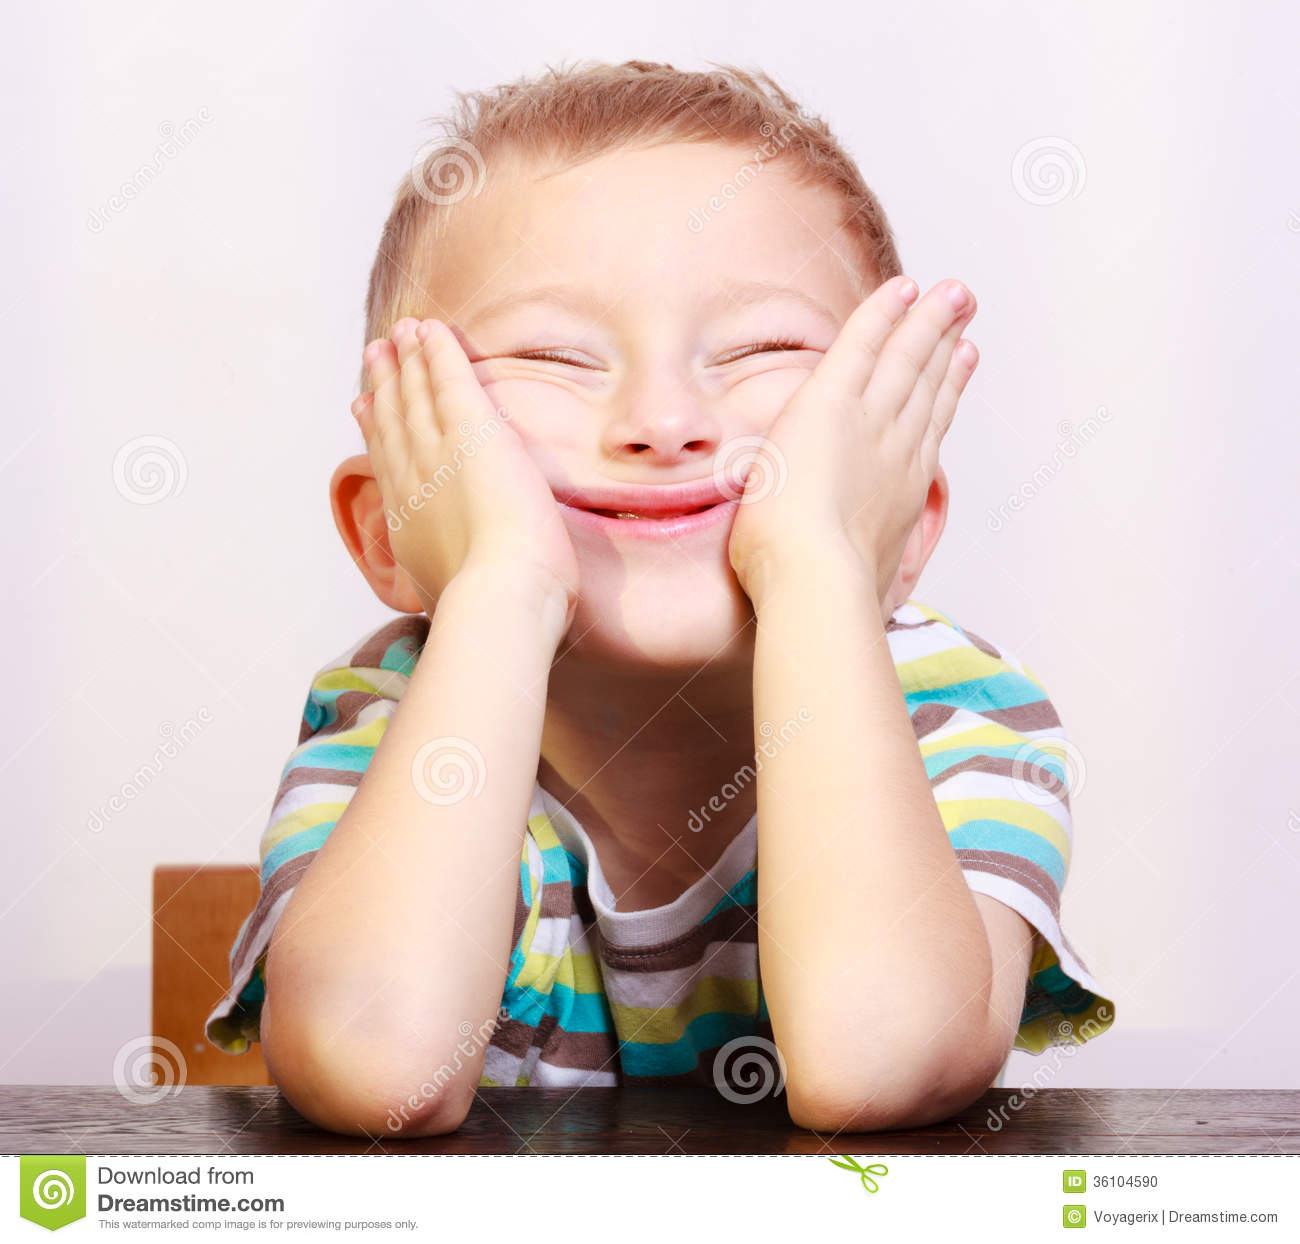 portrait of blond boy child kid making funny face at the table - Fun Kid Pictures